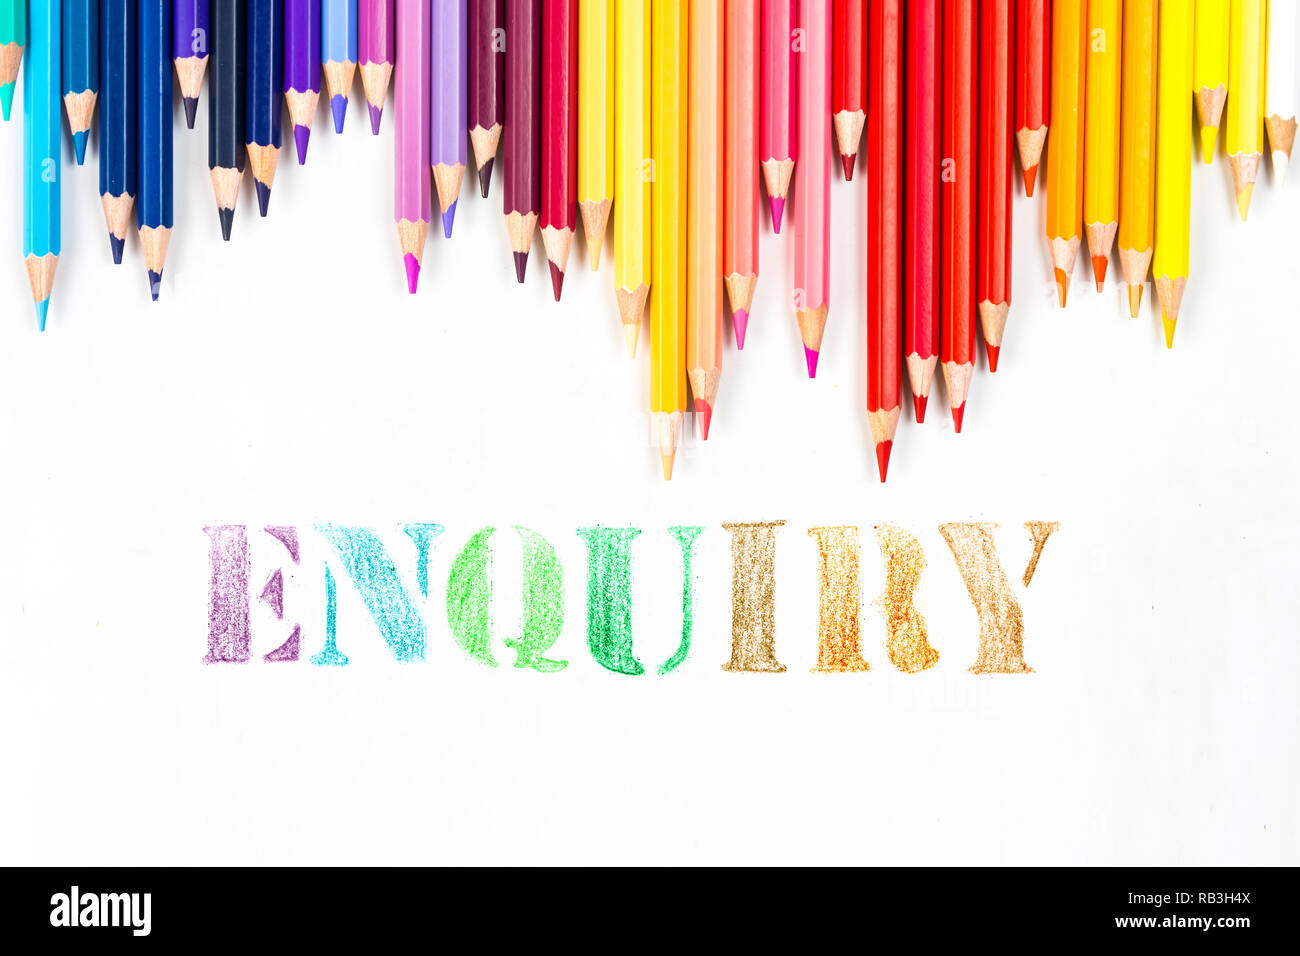 Enquiry drawing by colour pencils - Stock Image